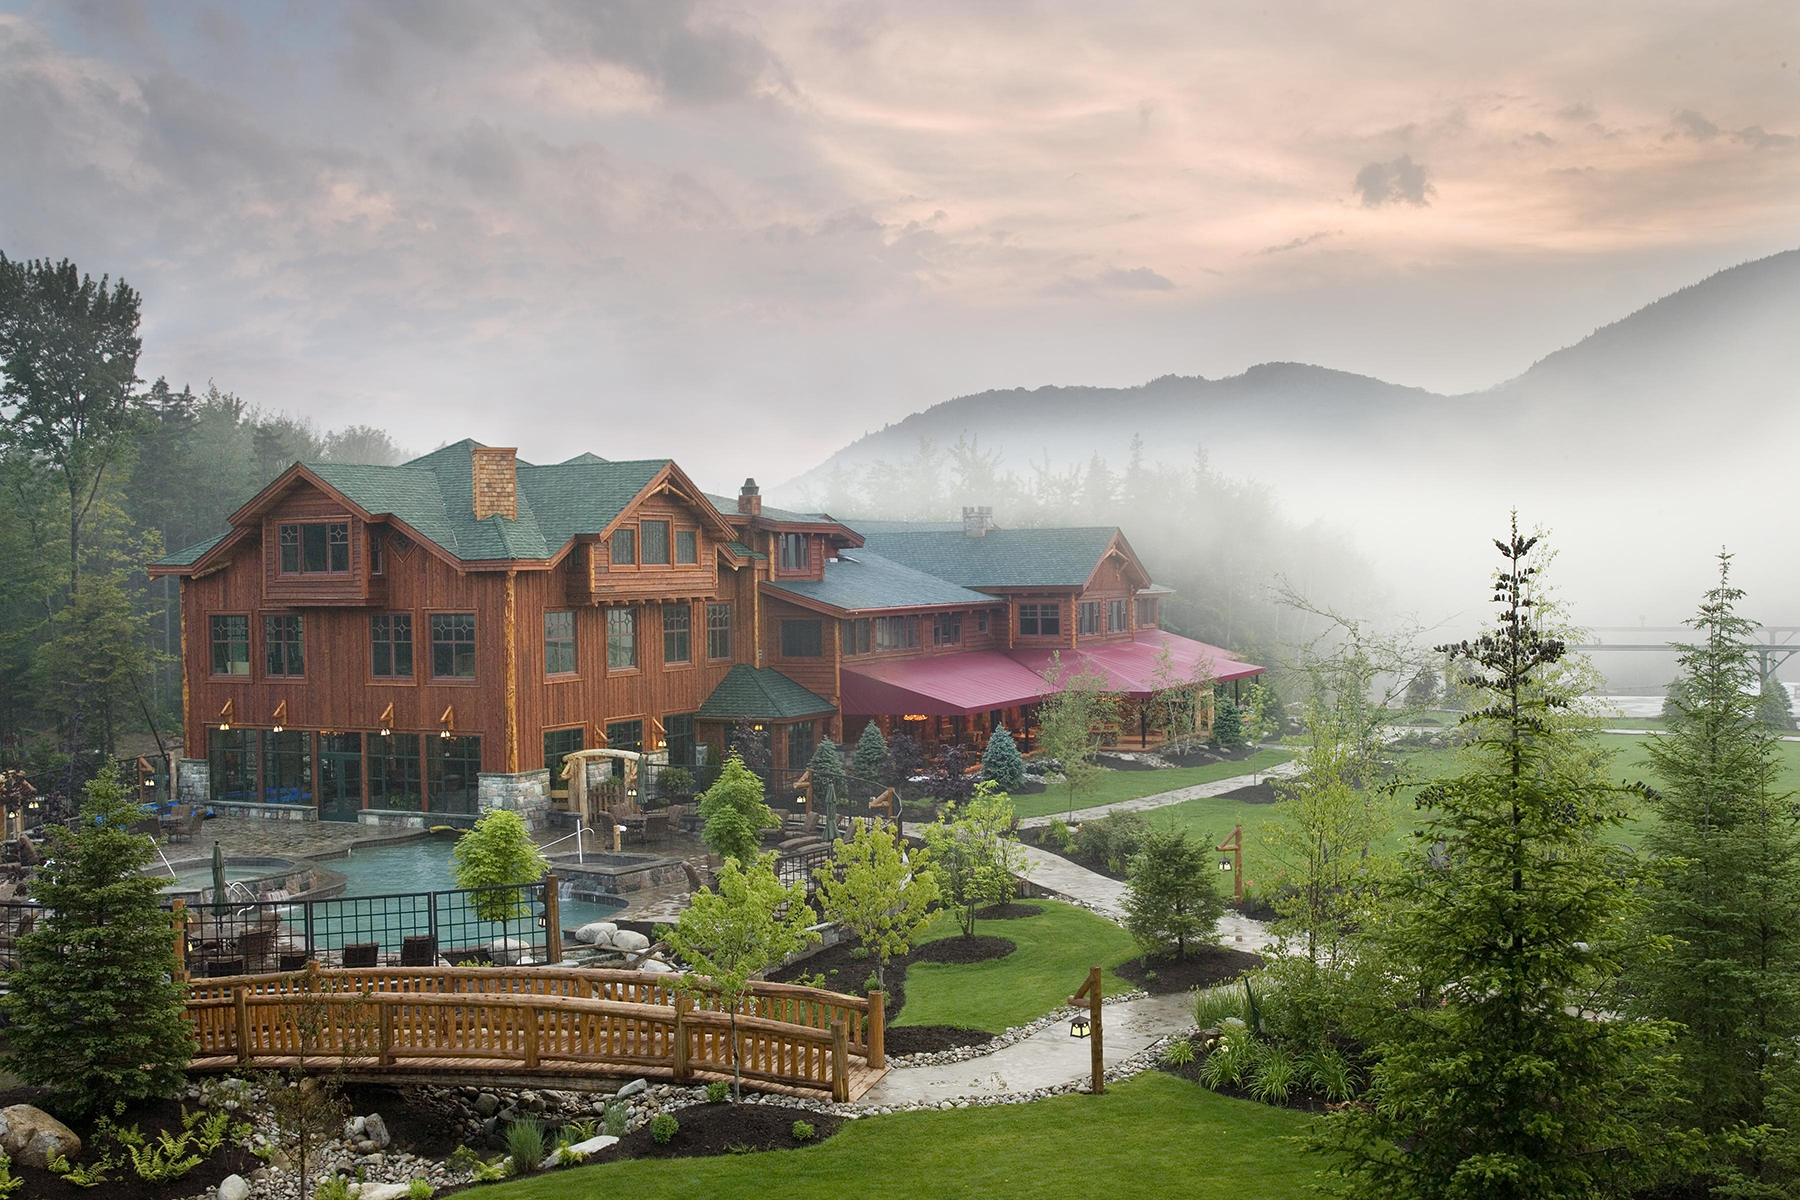 Fractional Ownership for Sale at Whiteface Lodge Corner Suite 7 Whiteface Inn Lane Ste 314 Lake Placid, New York, 12946 United States